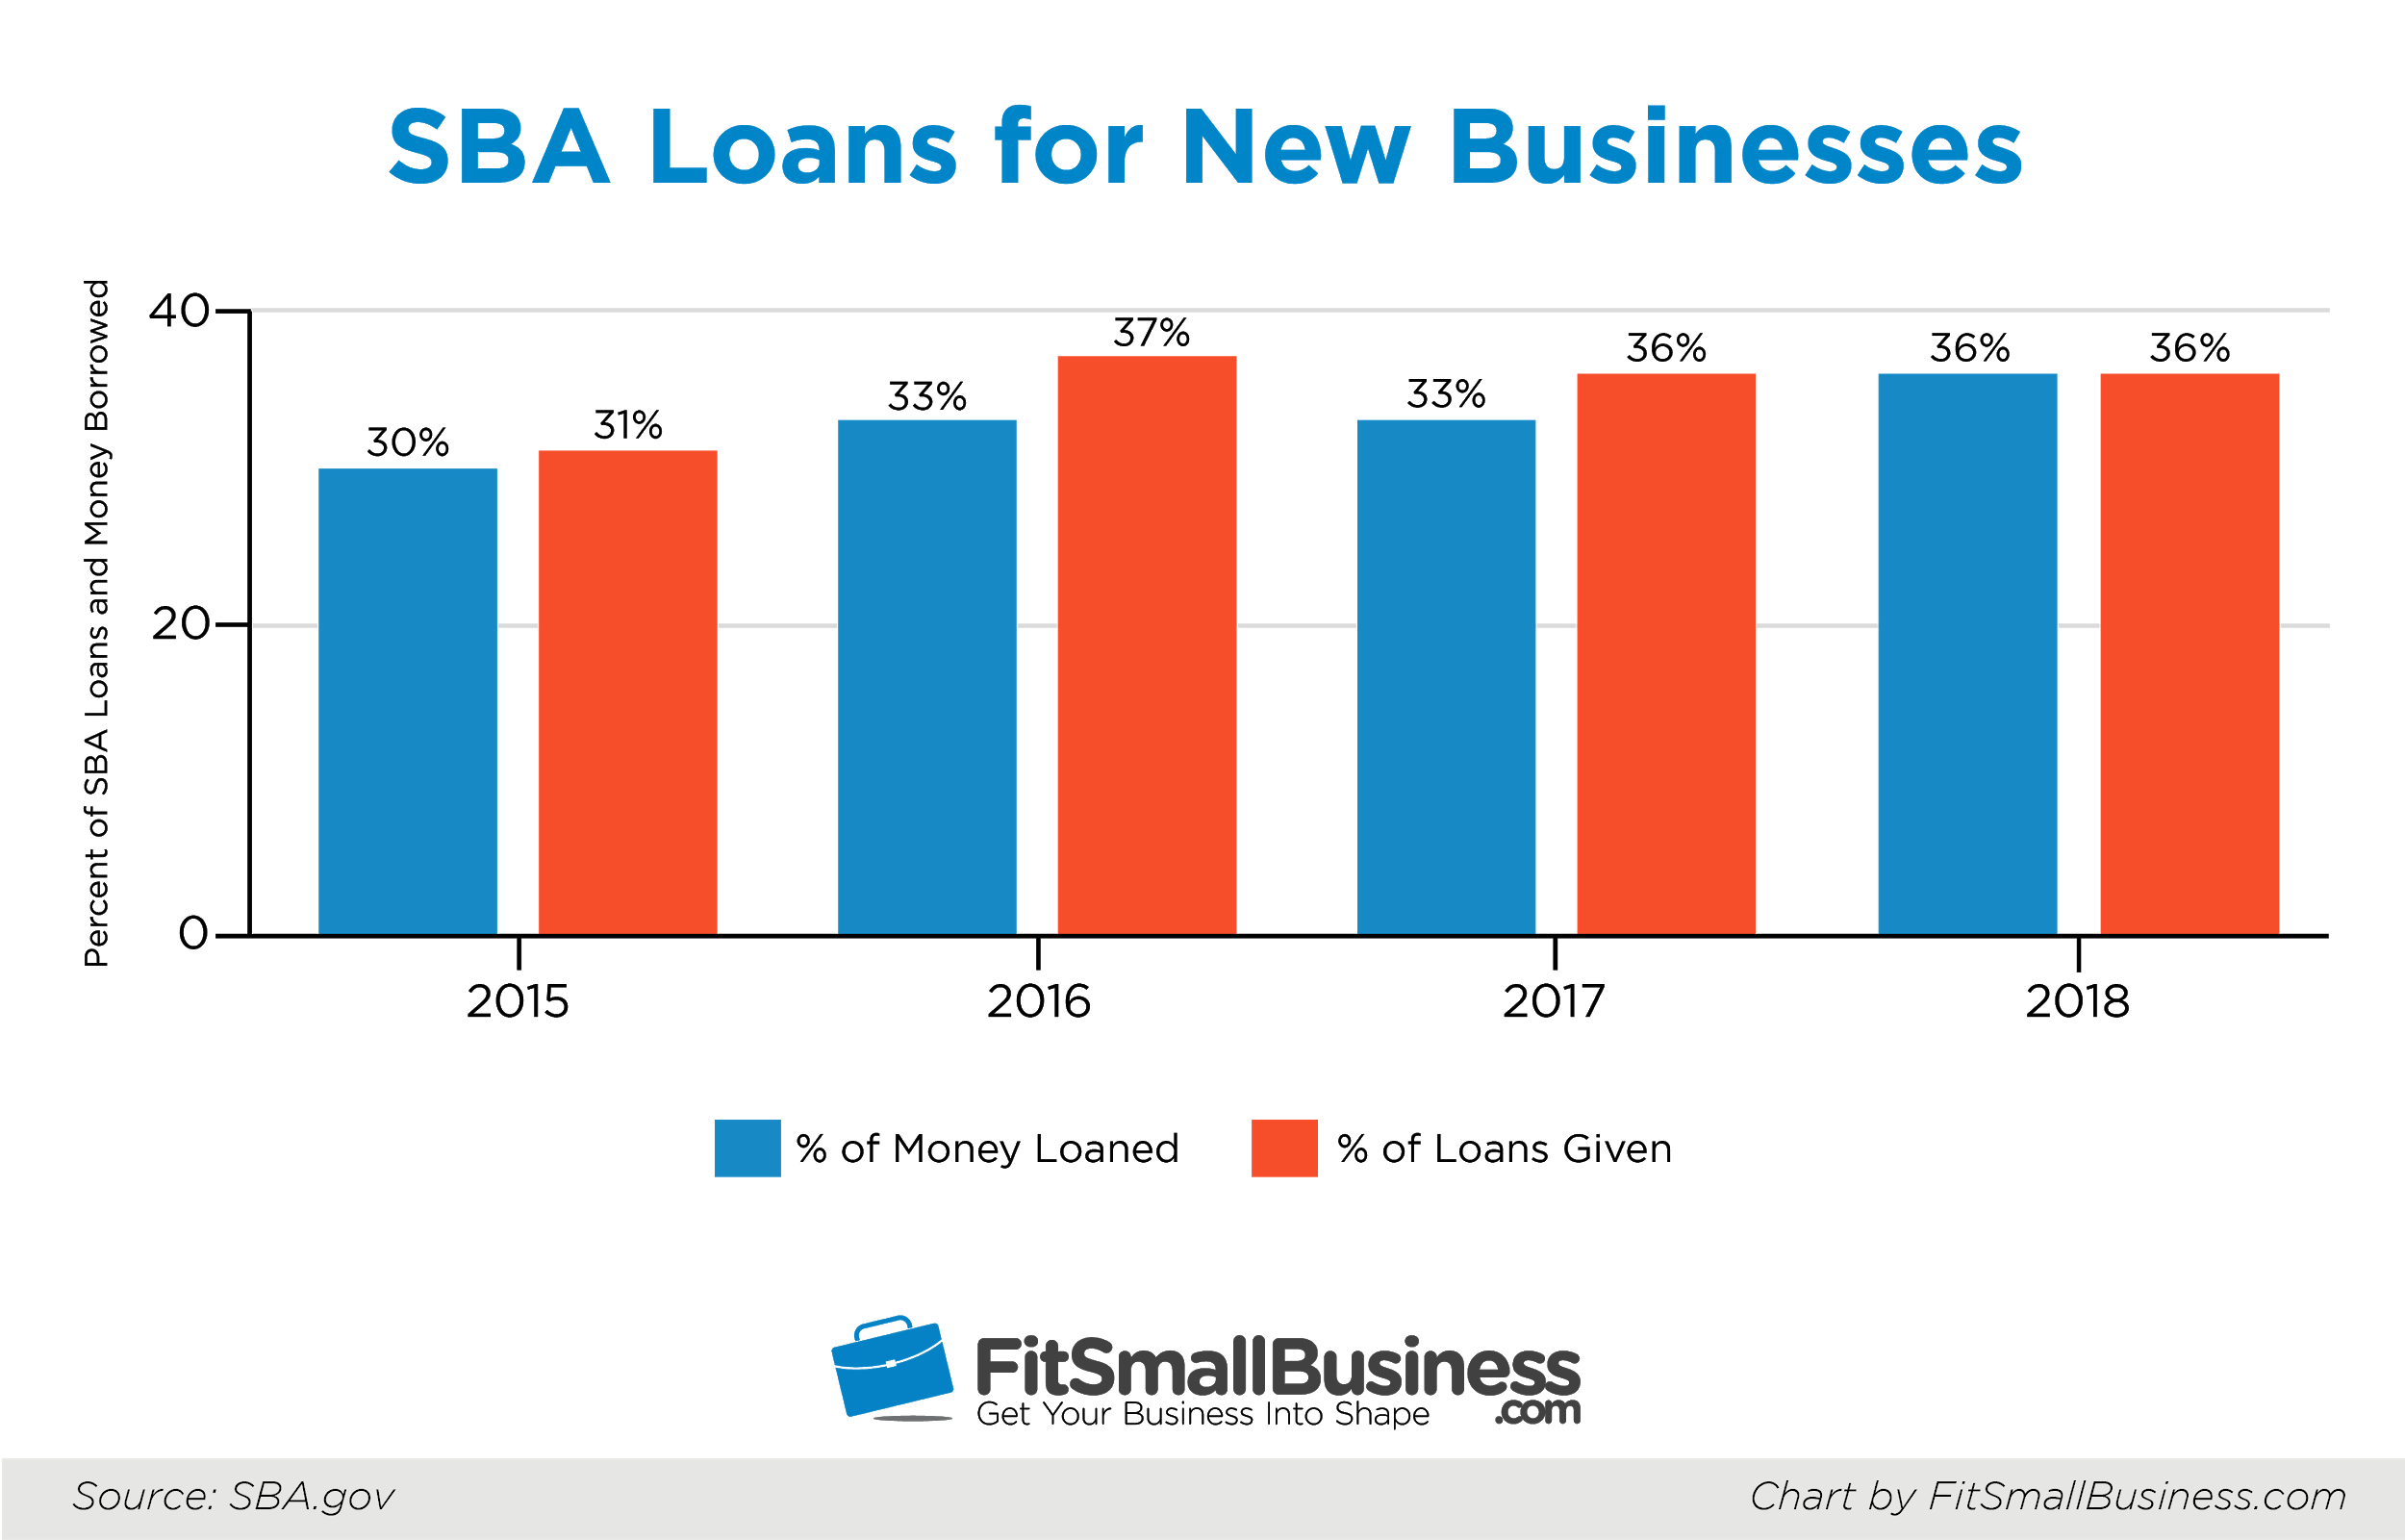 How to Apply for an SBA Loan in 4 Easy Steps